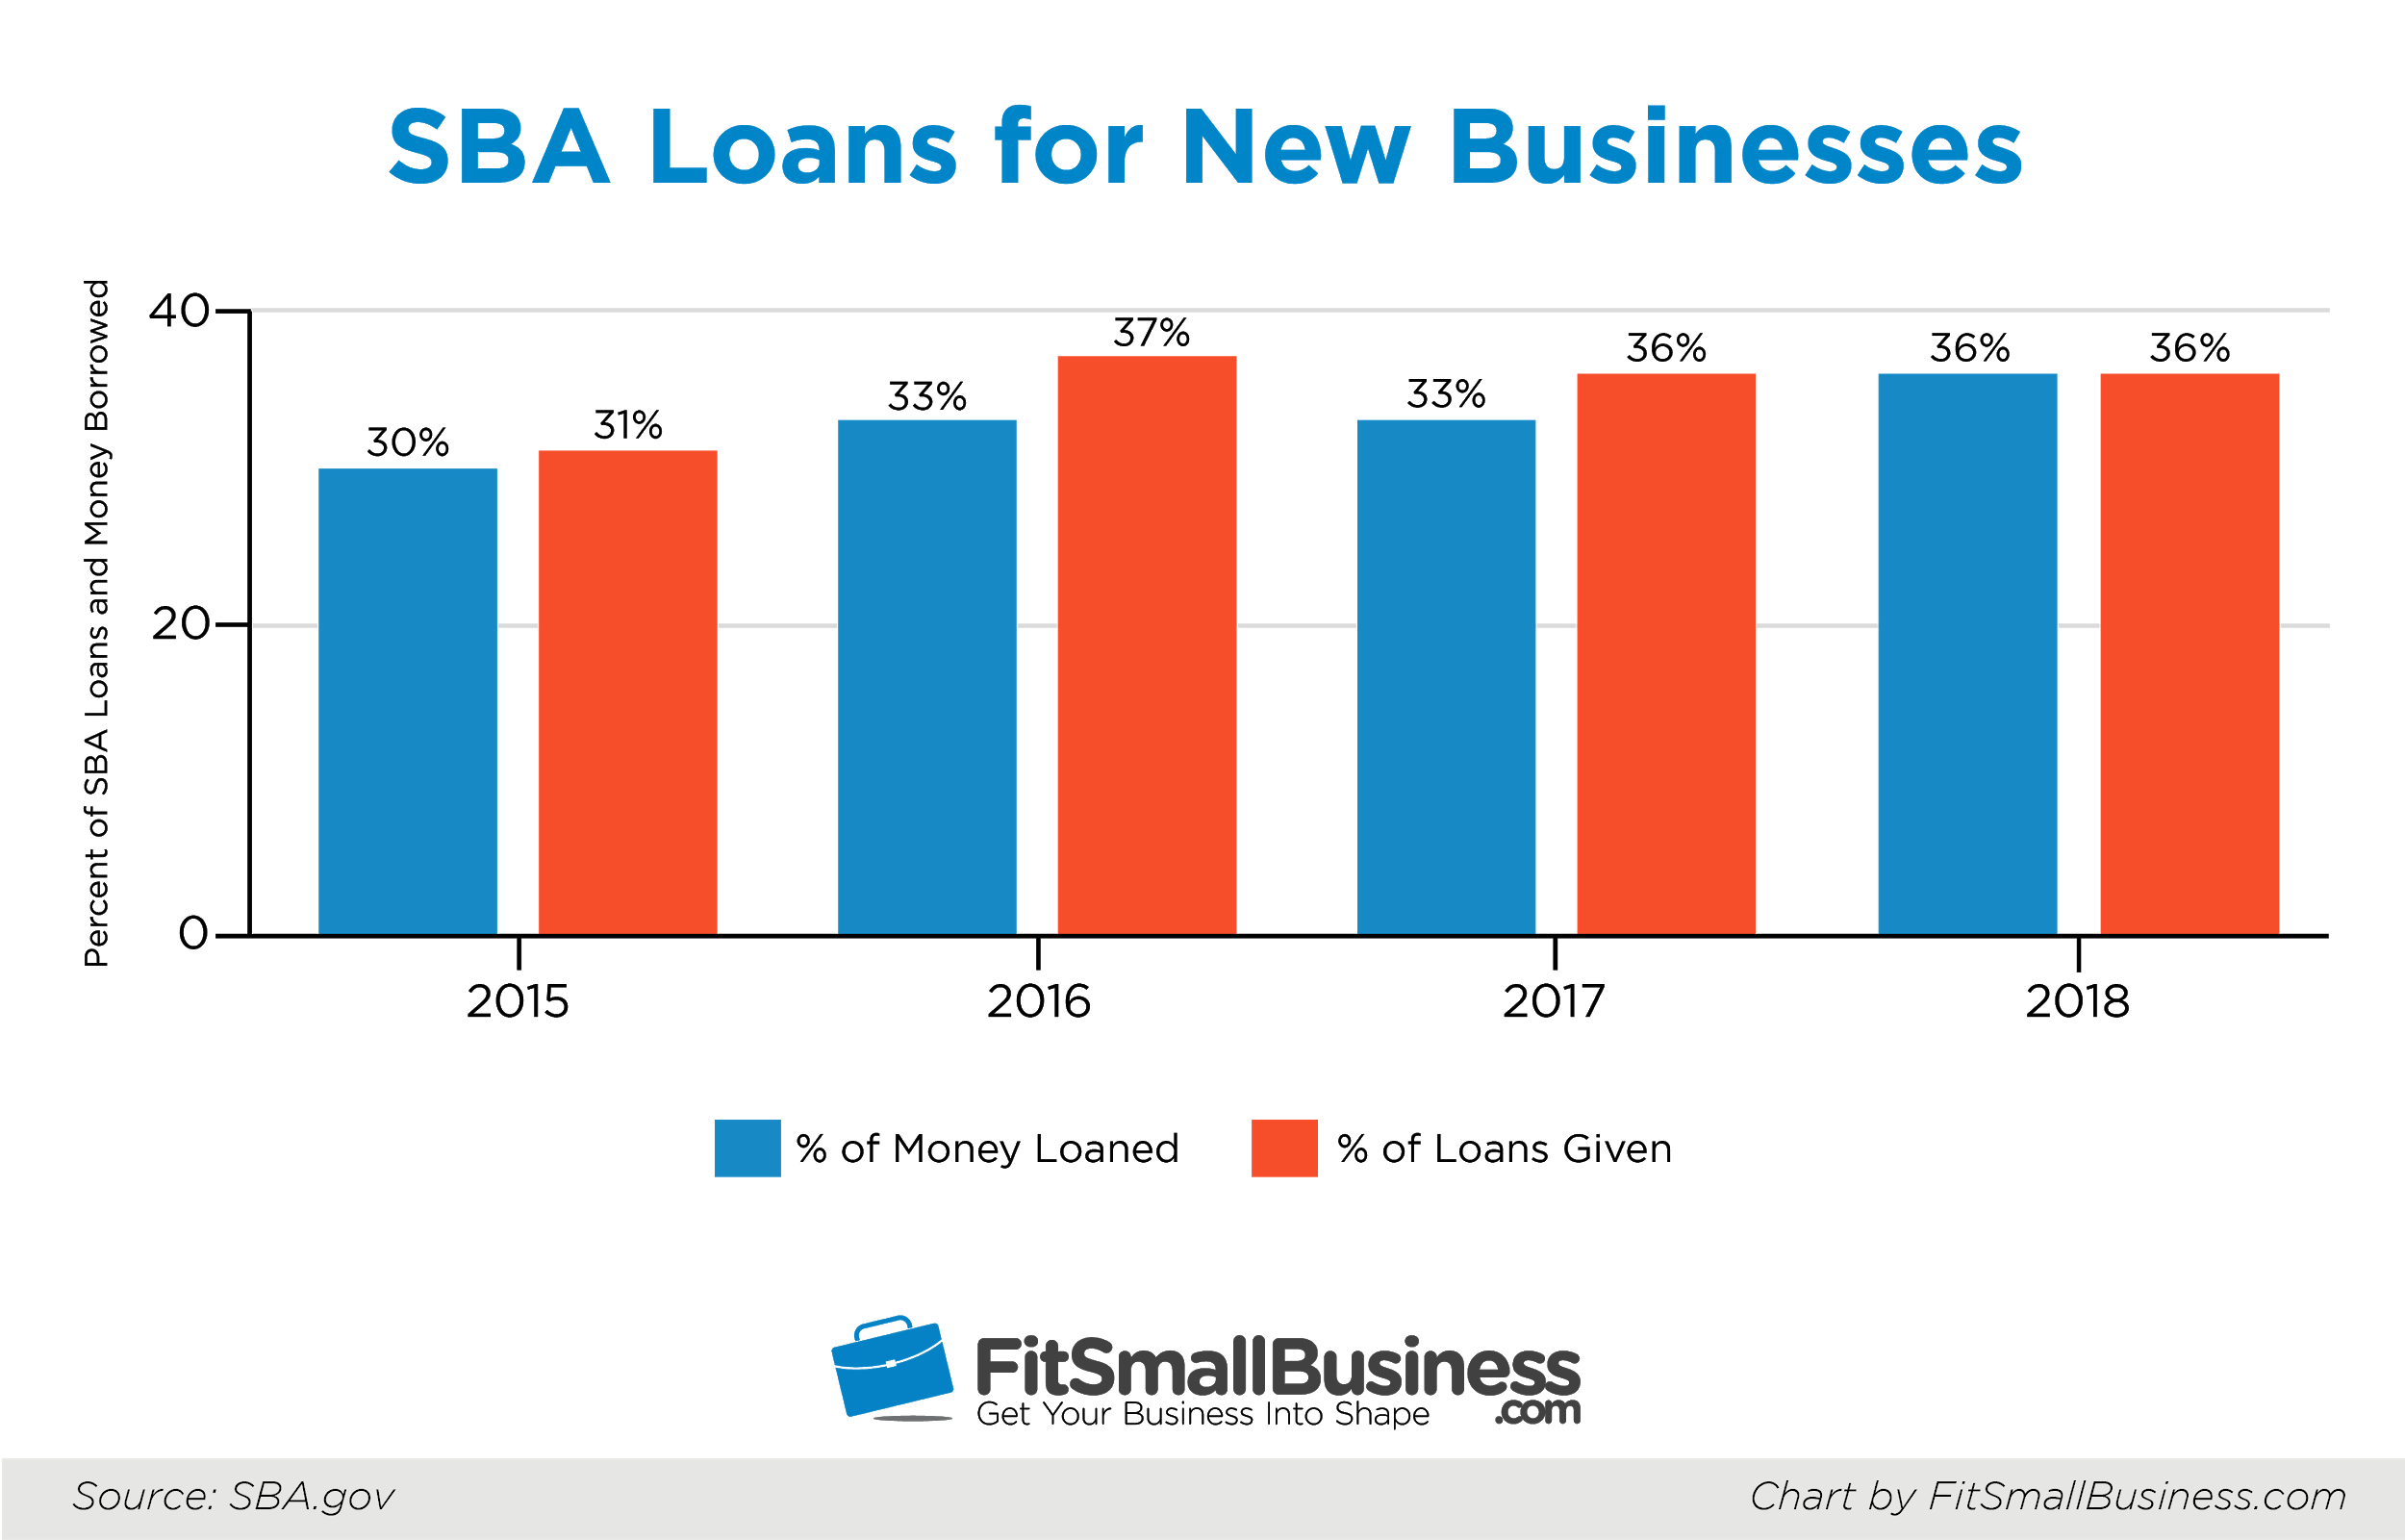 How to Apply for an SBA Loan in 4 Easy Steps